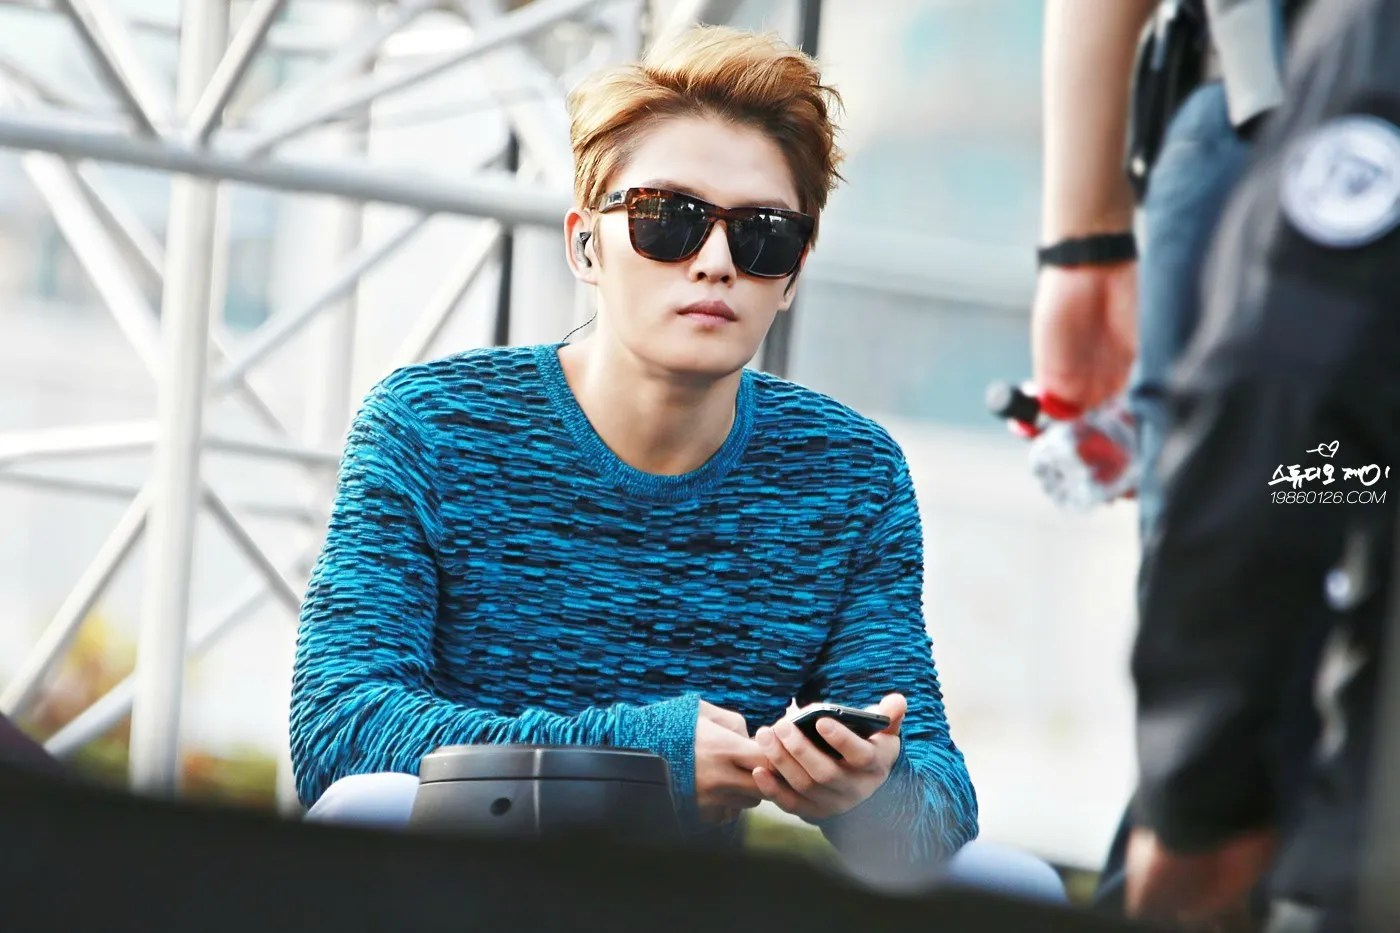 Hq Pics  141005 Jyj U2019s Rehearsal For K